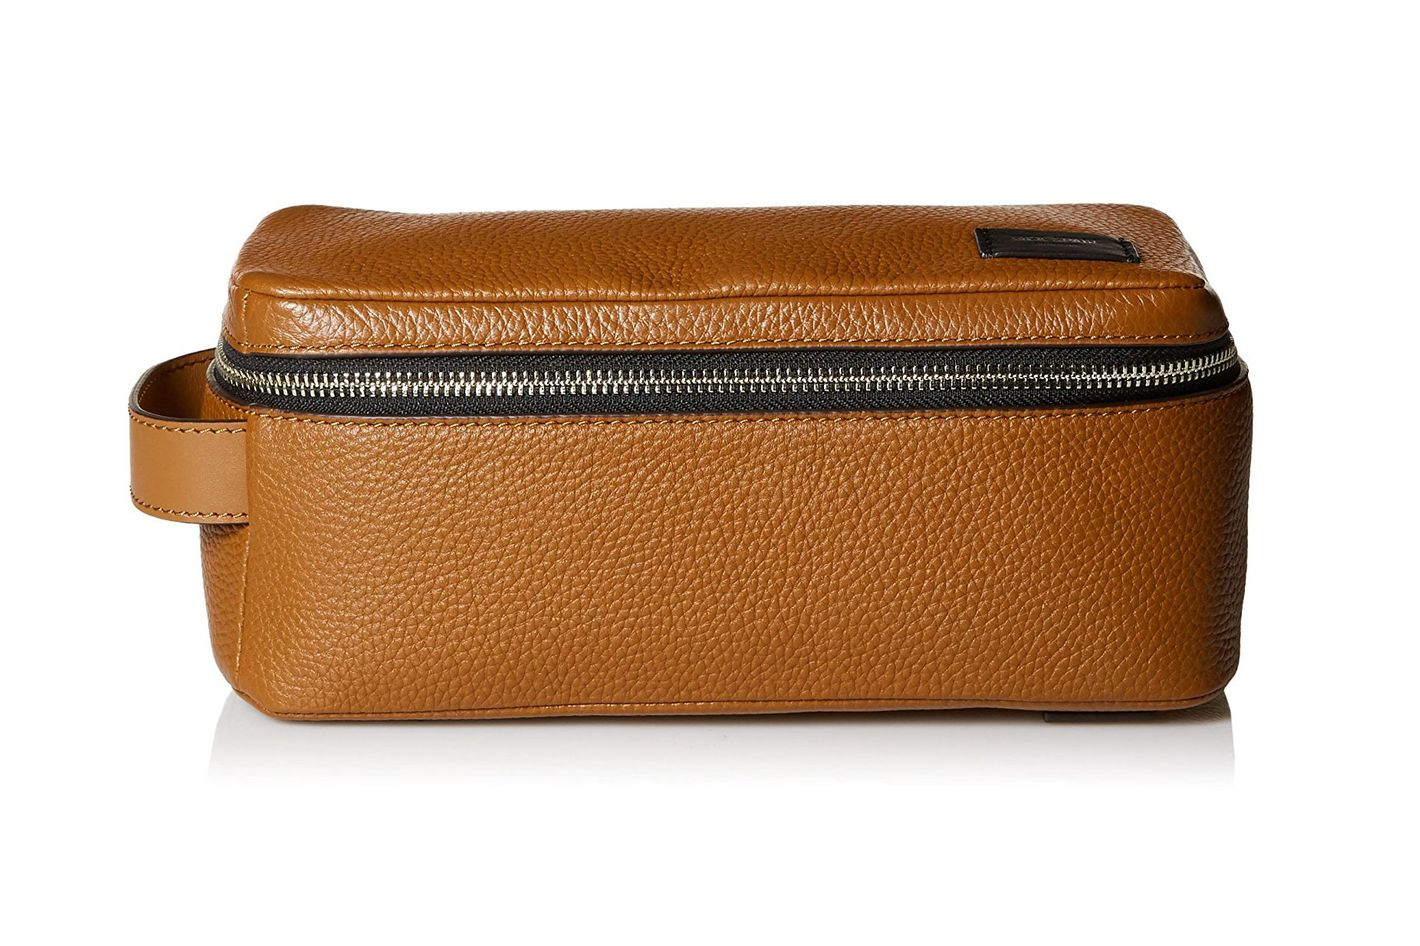 Jack Spade Pebbled Leather Dopp Kit at Amazon. Buy